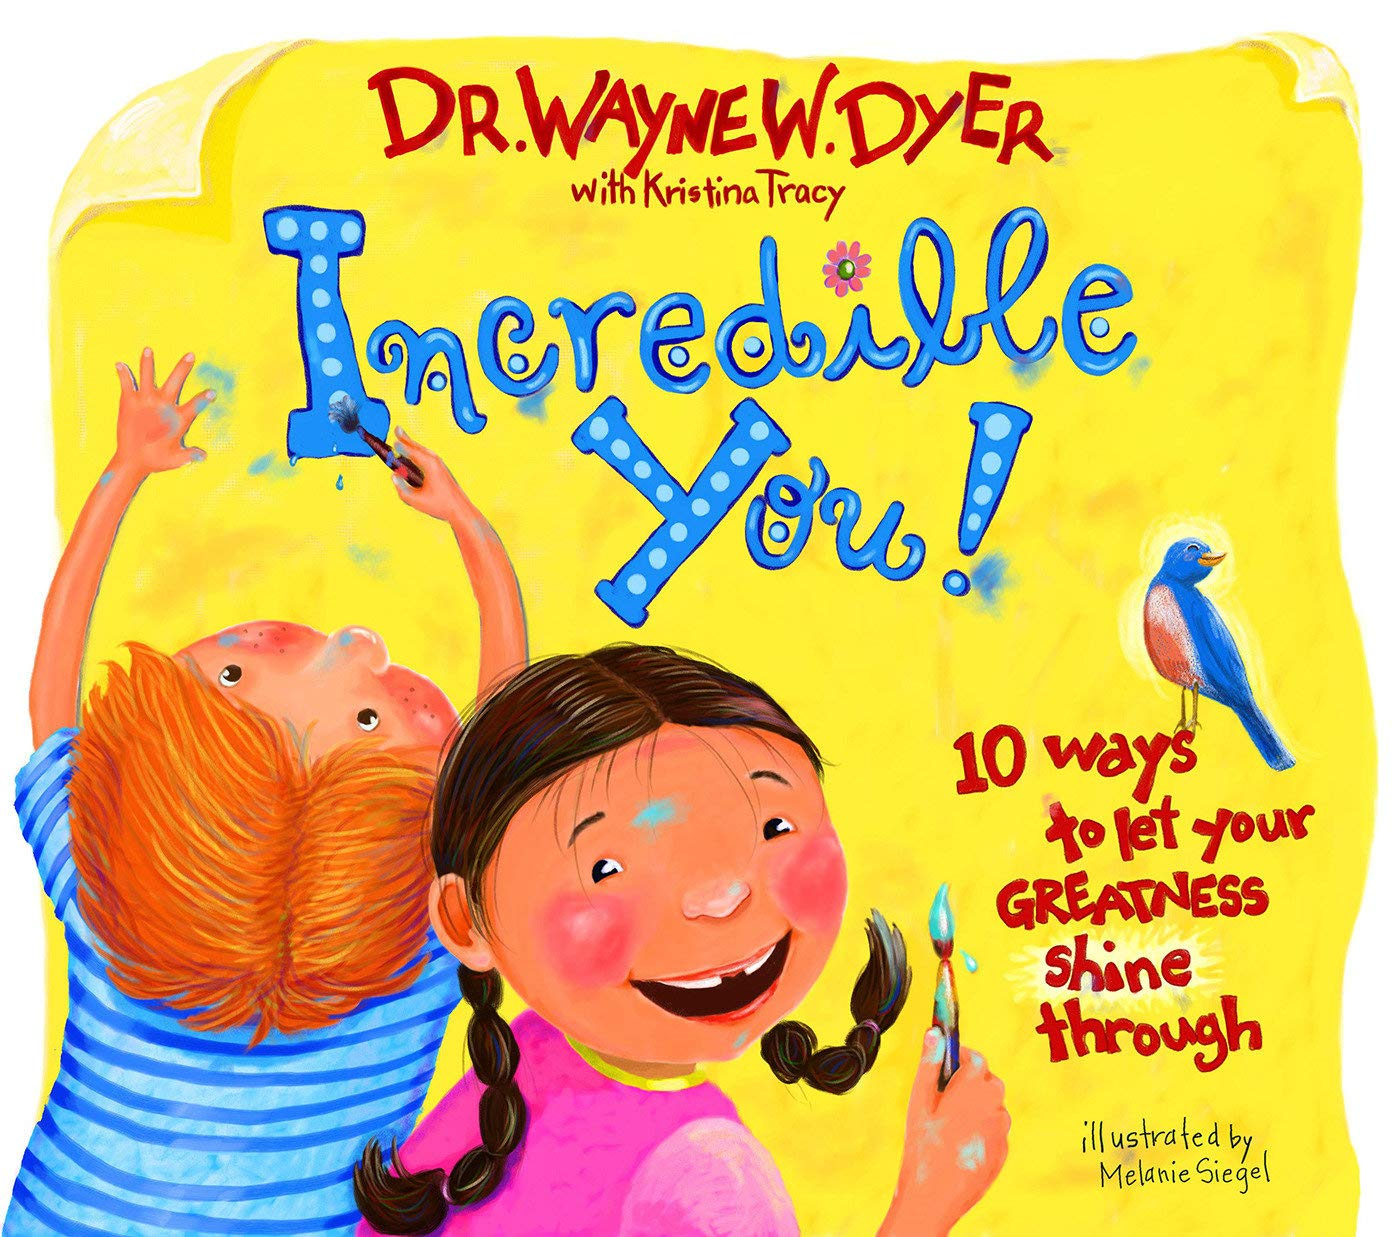 Incredible You Childrens Book Kids Story Wayne Dyer Positive Picture Ages 4-9